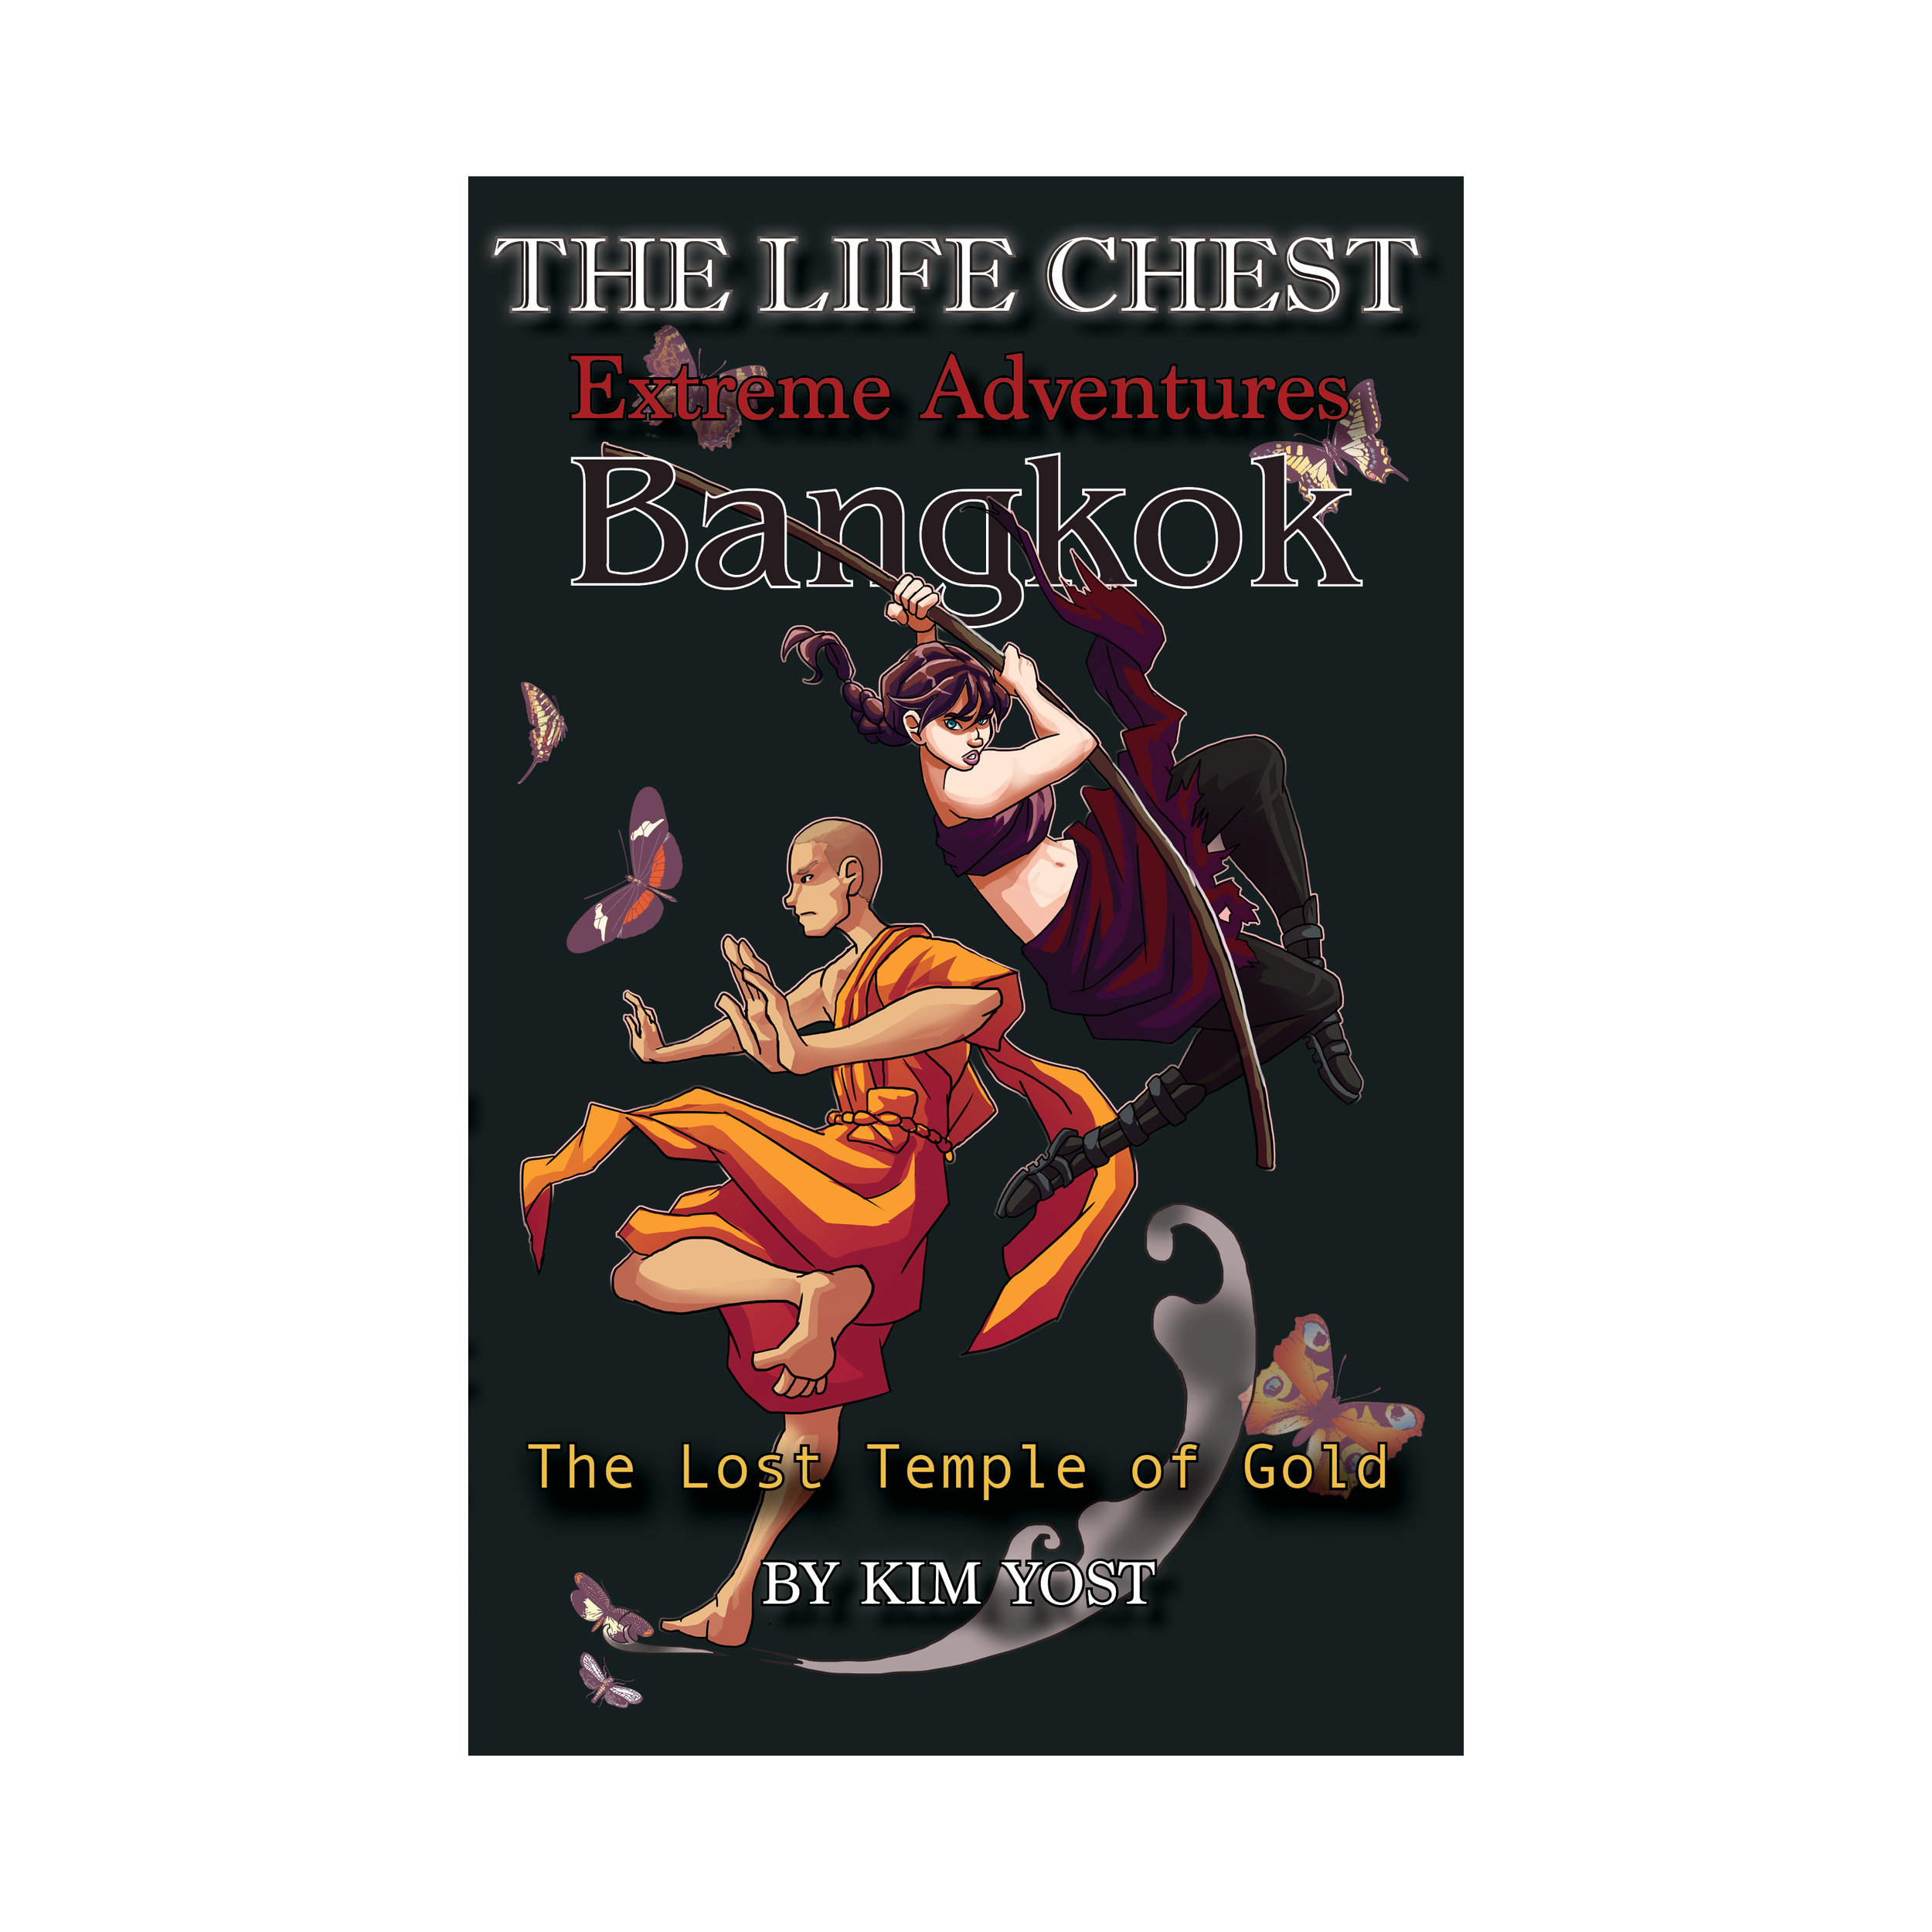 The Life Chest Extreme Adventures Bangkok by Kim Yost Book Cover